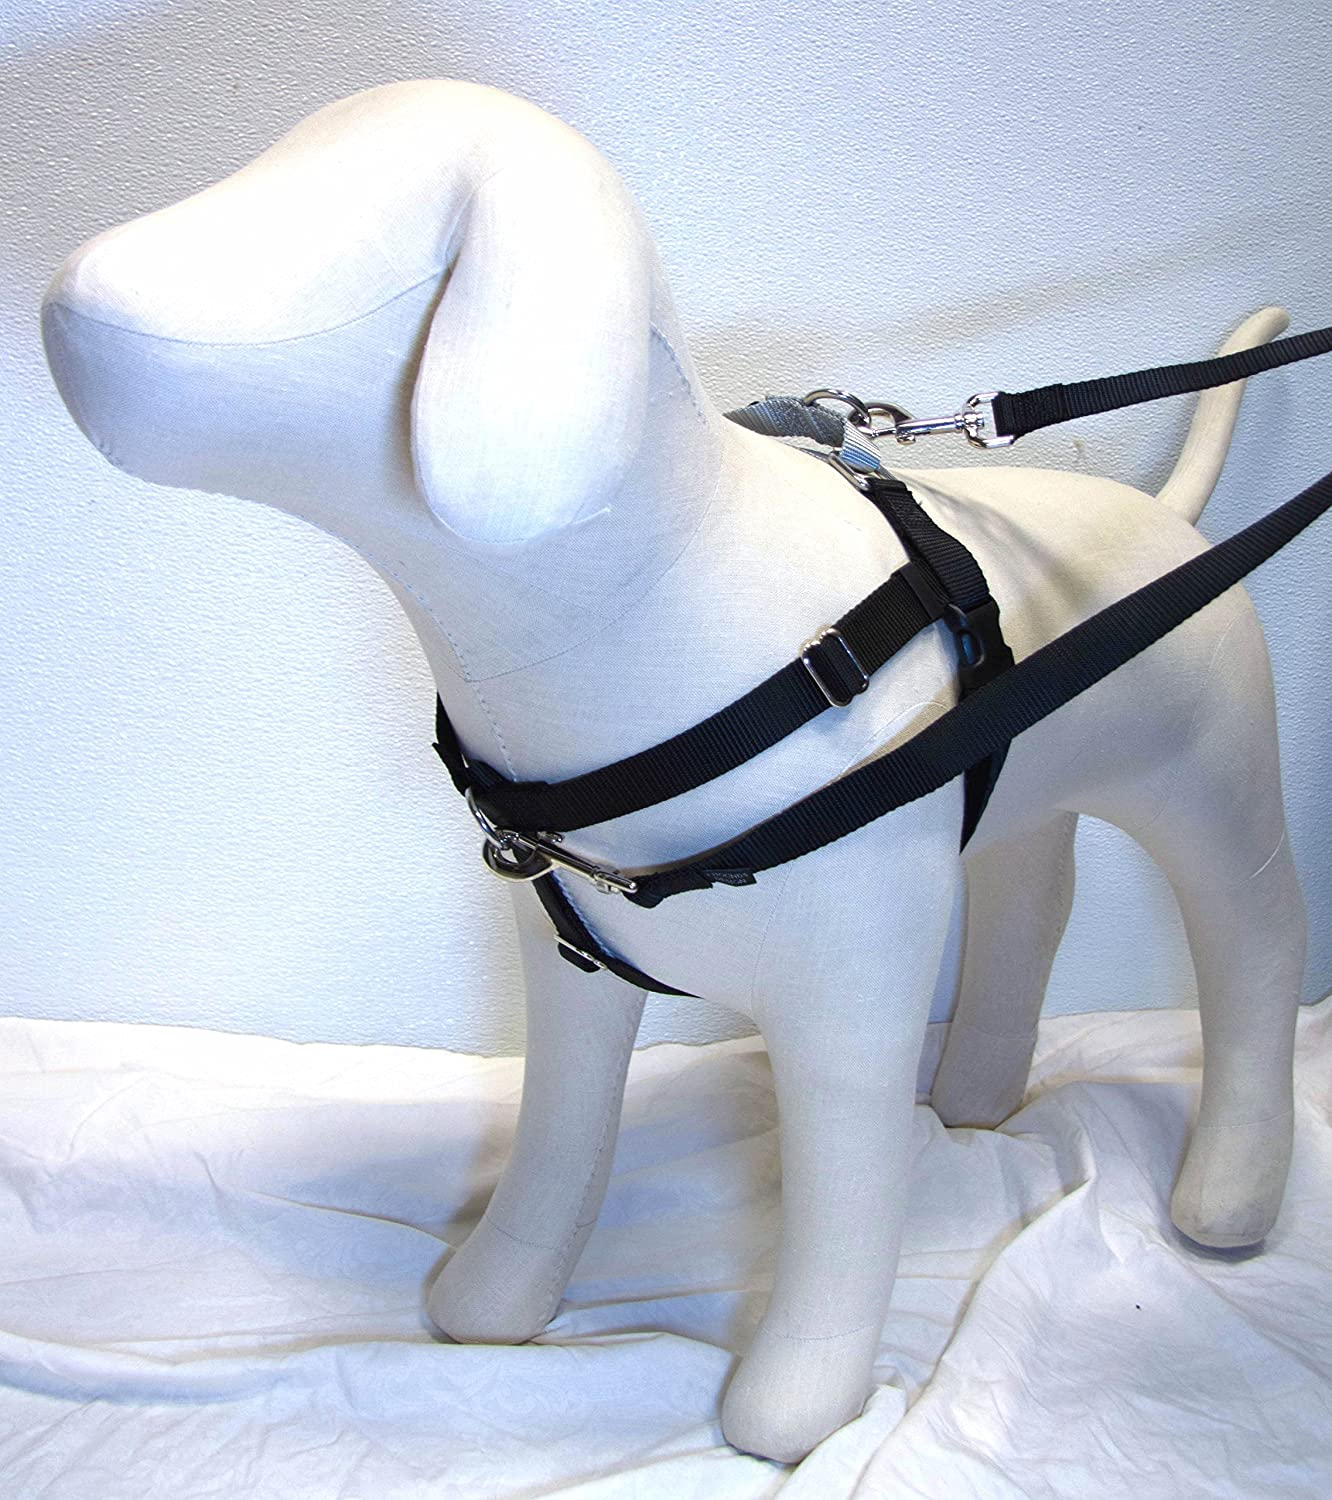 5 8  Wide XSmall Freedom No-Pull Harness AND 4-Configuration Training Leash PACKAGE Direct from Inventor (Black w Silver Loop)